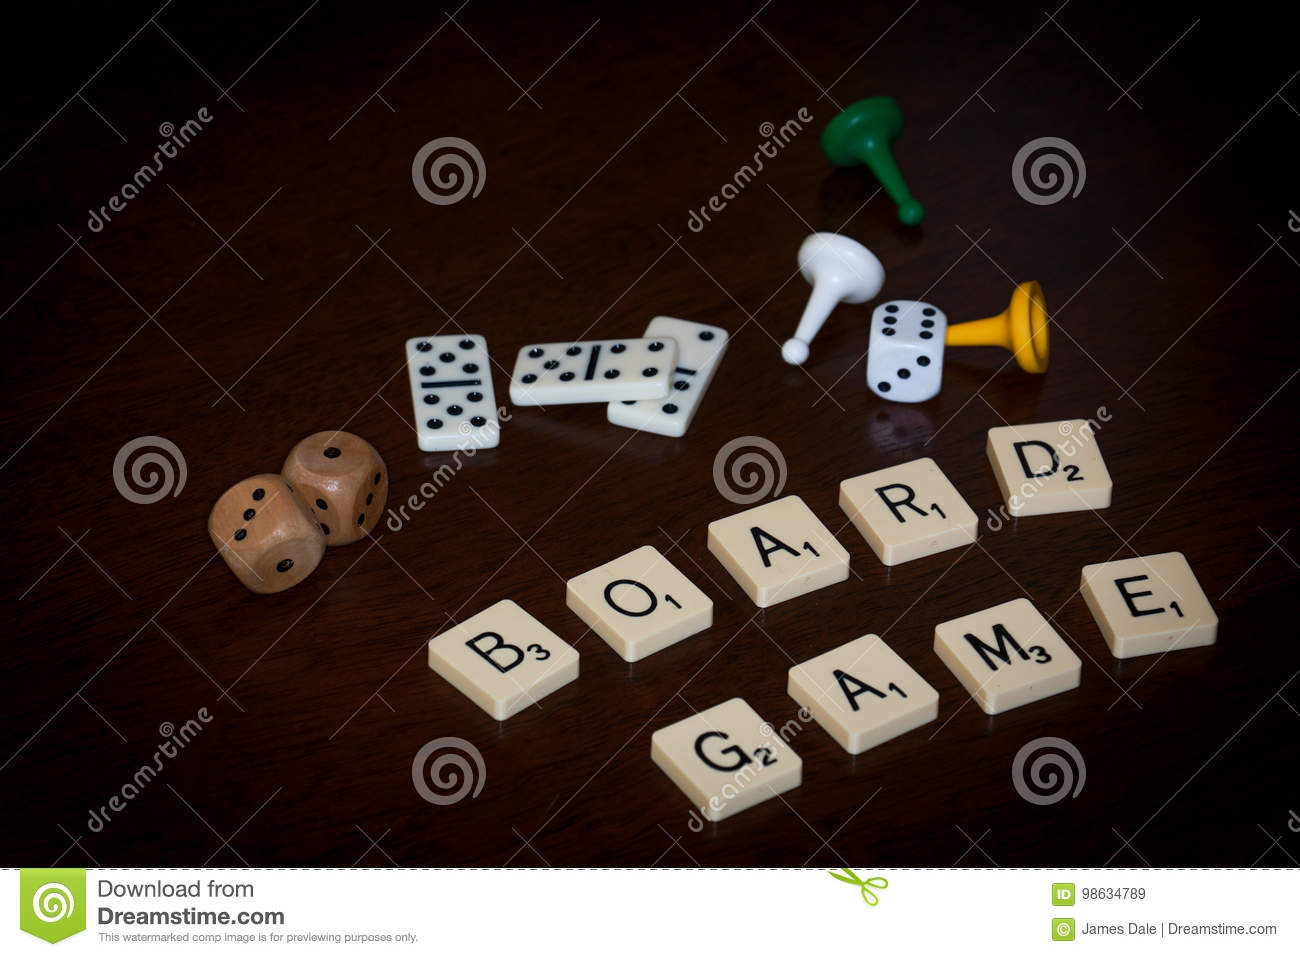 Alphabet letters spell out `BOARD GAME`